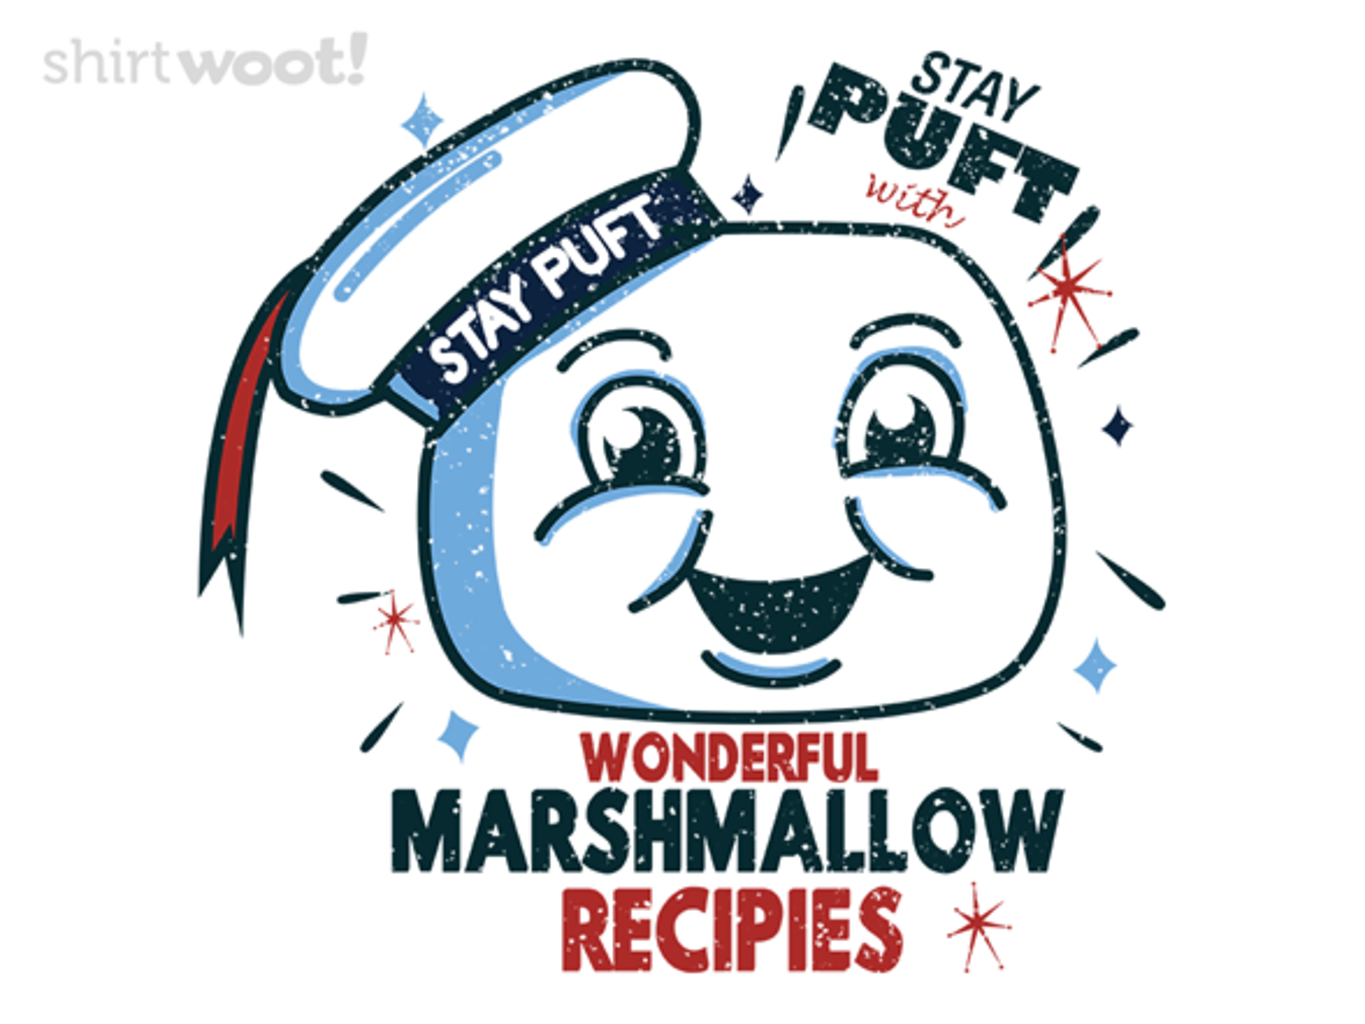 Woot!: Mallow Recipes